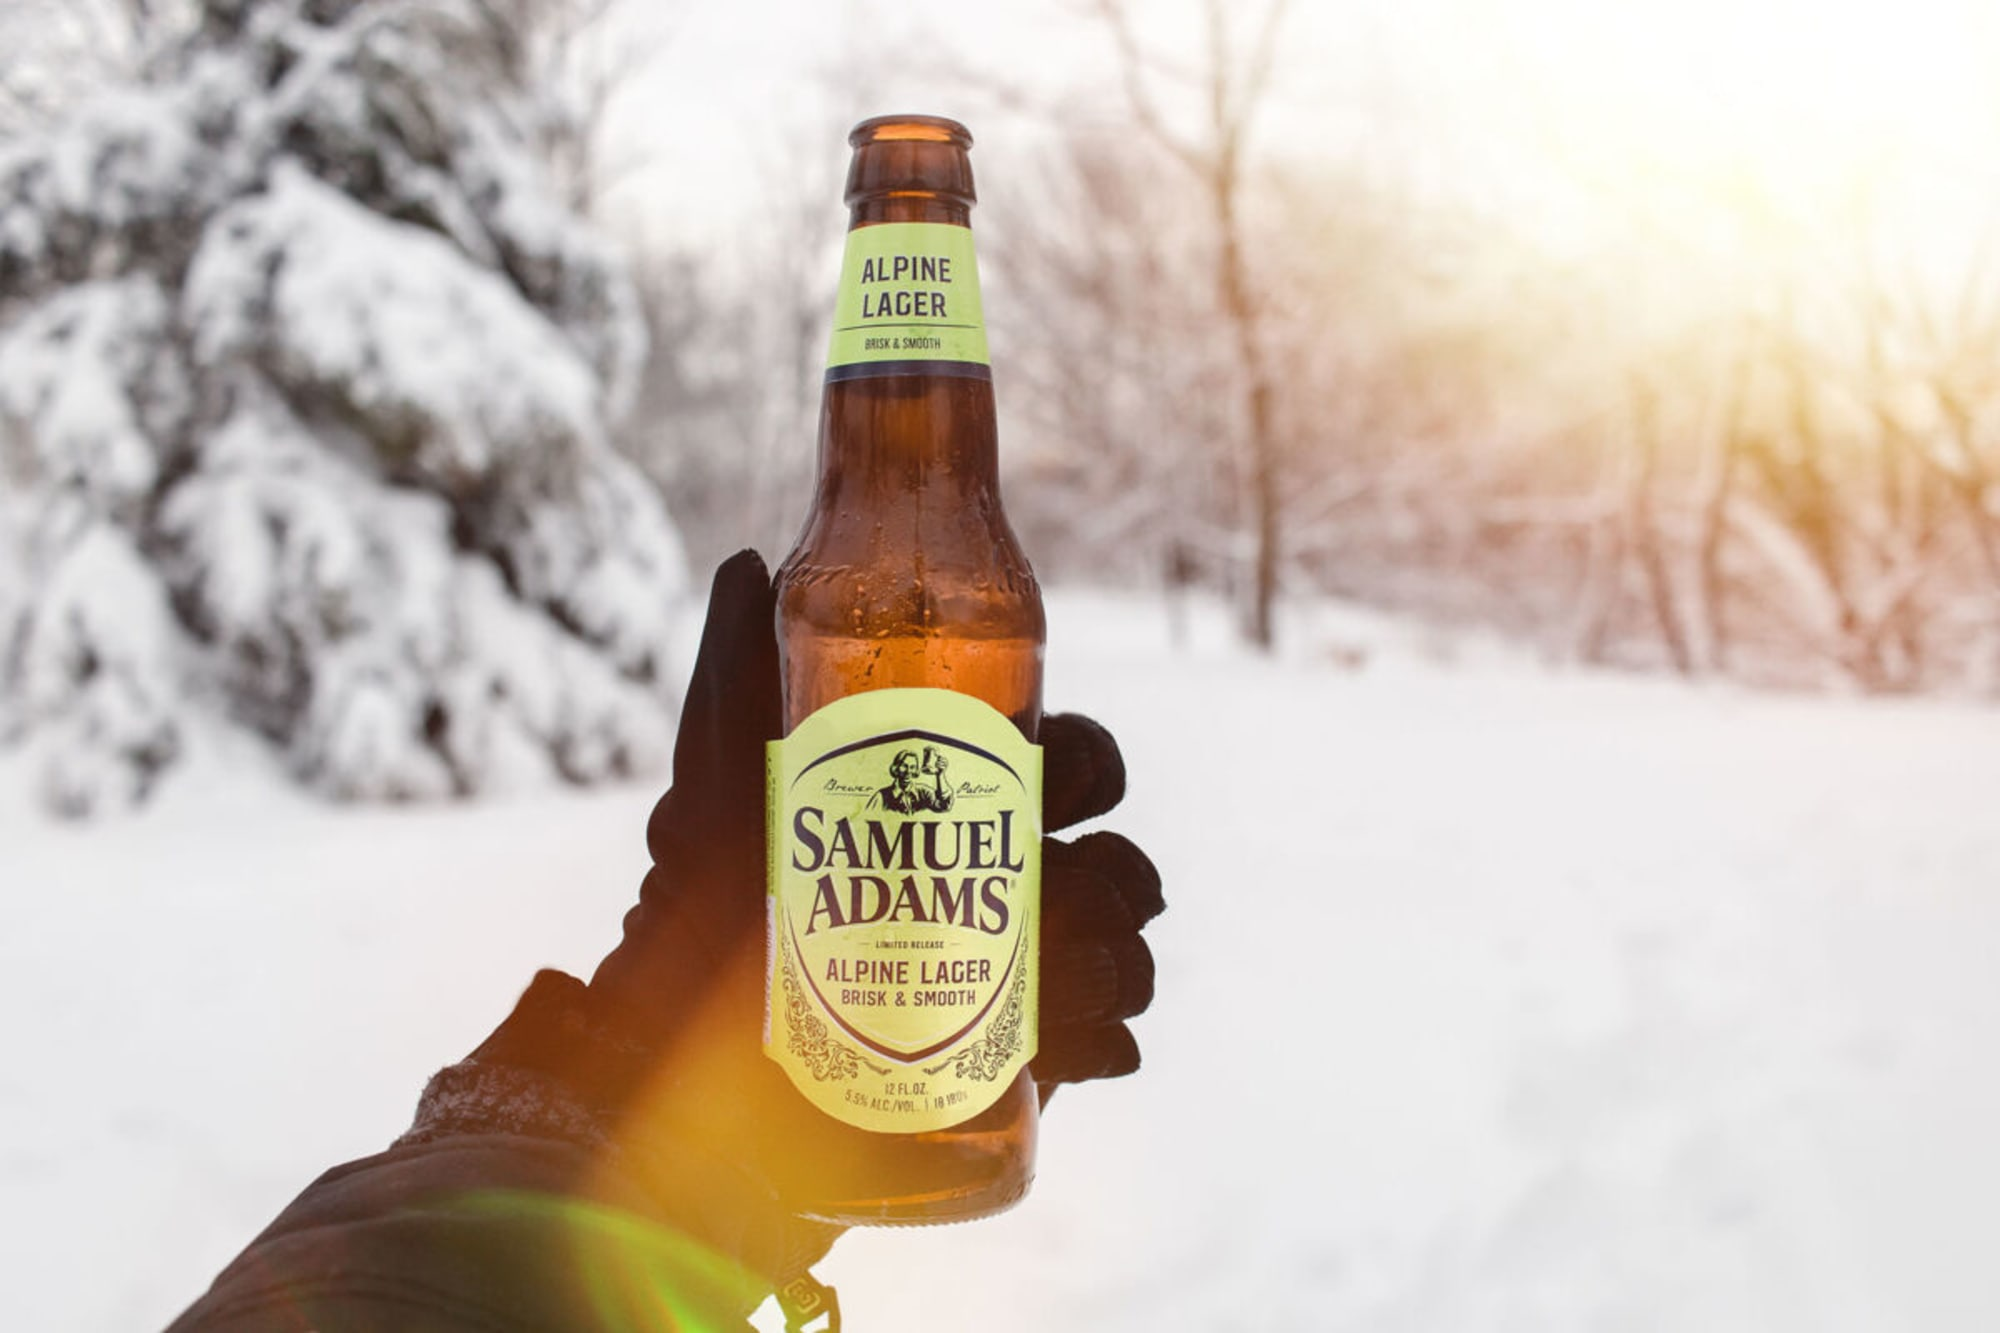 Samuel Adams Gameday Variety Pack Embraces The Chilly Season photo